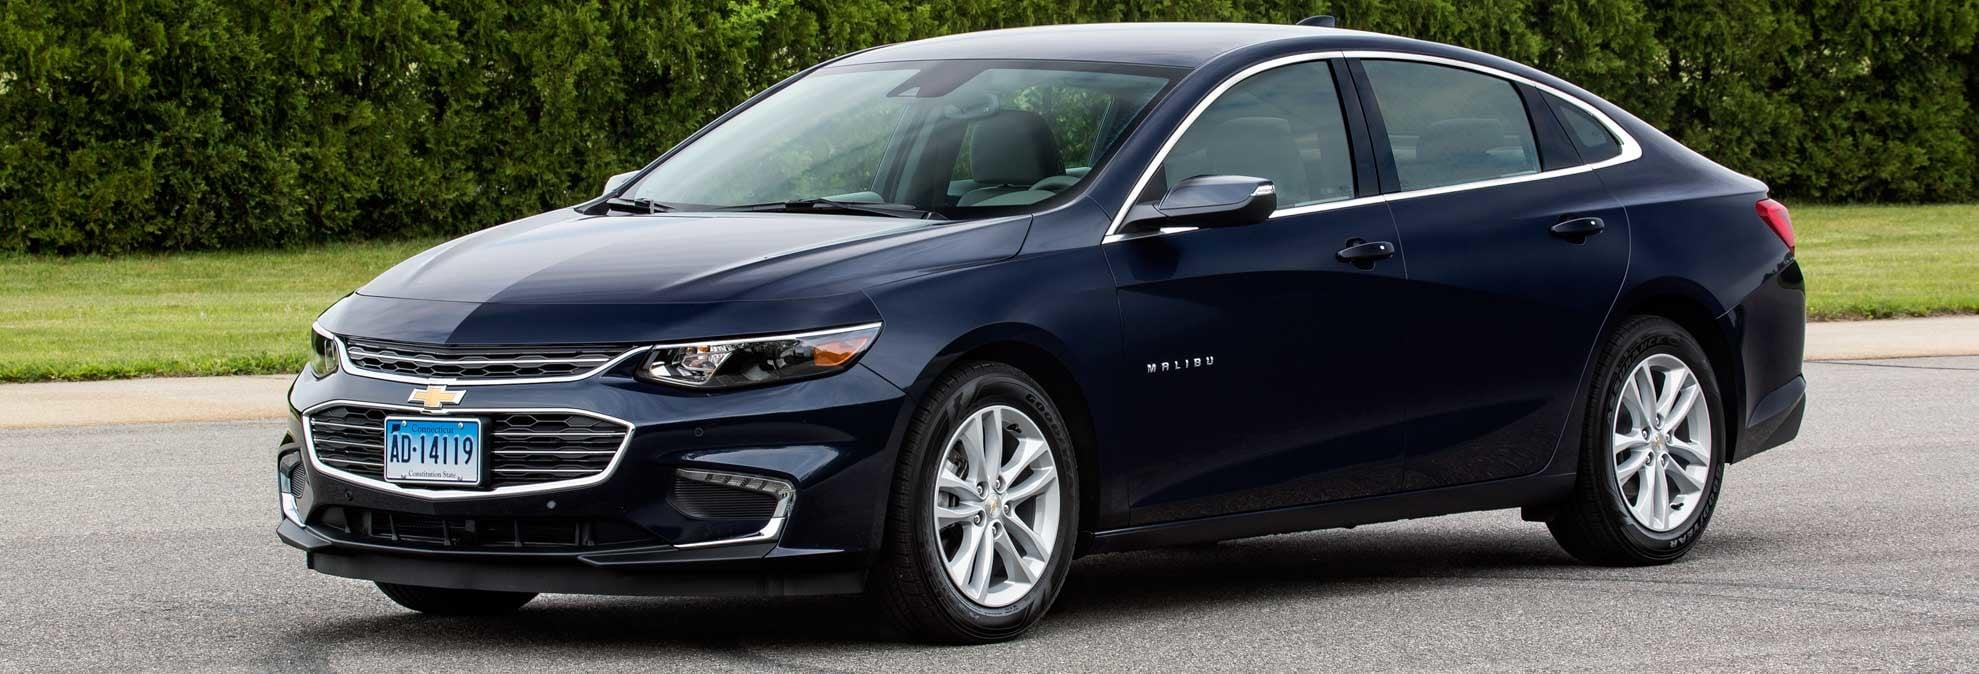 2017 chevrolet malibu hybrid achieves best in class fuel economy. Black Bedroom Furniture Sets. Home Design Ideas